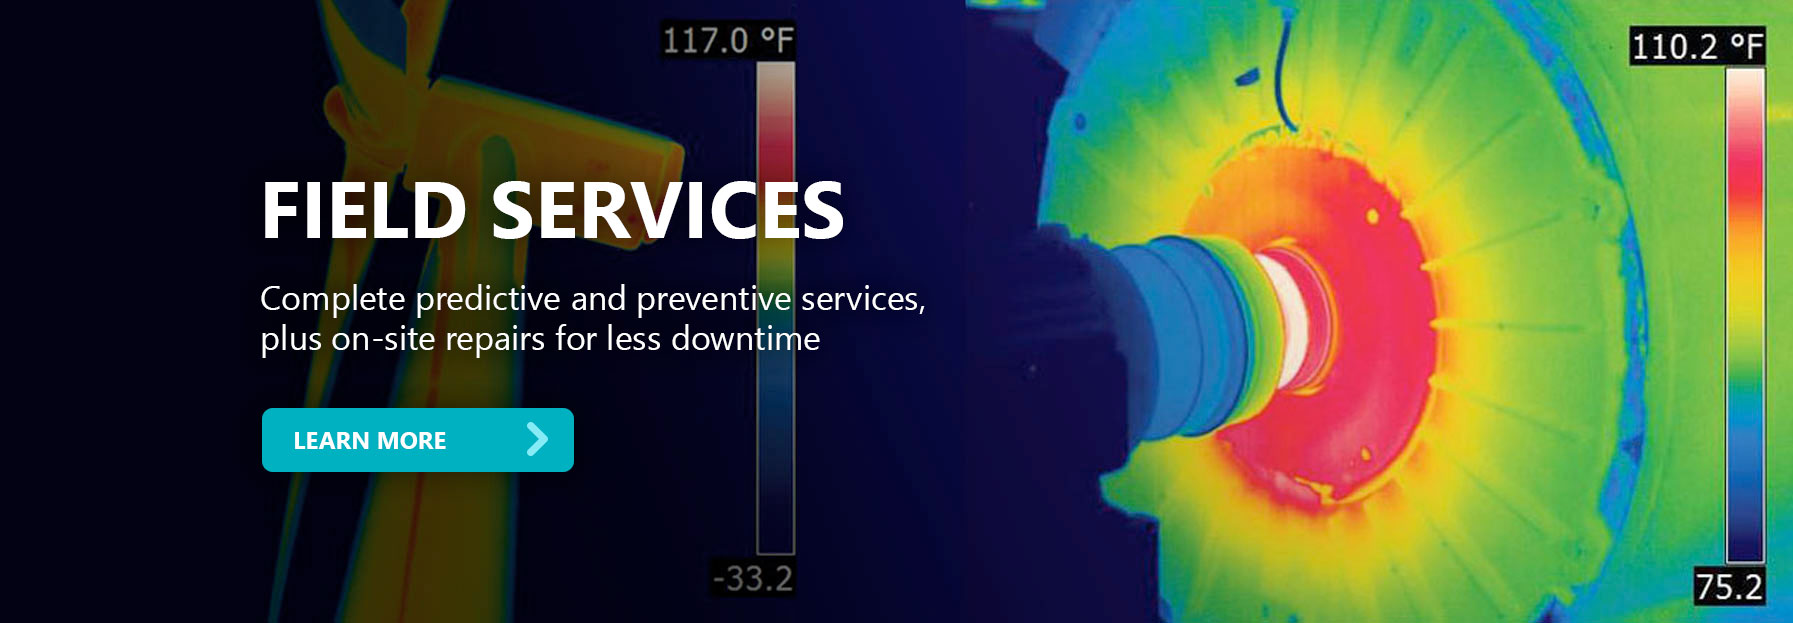 IPS Field Services